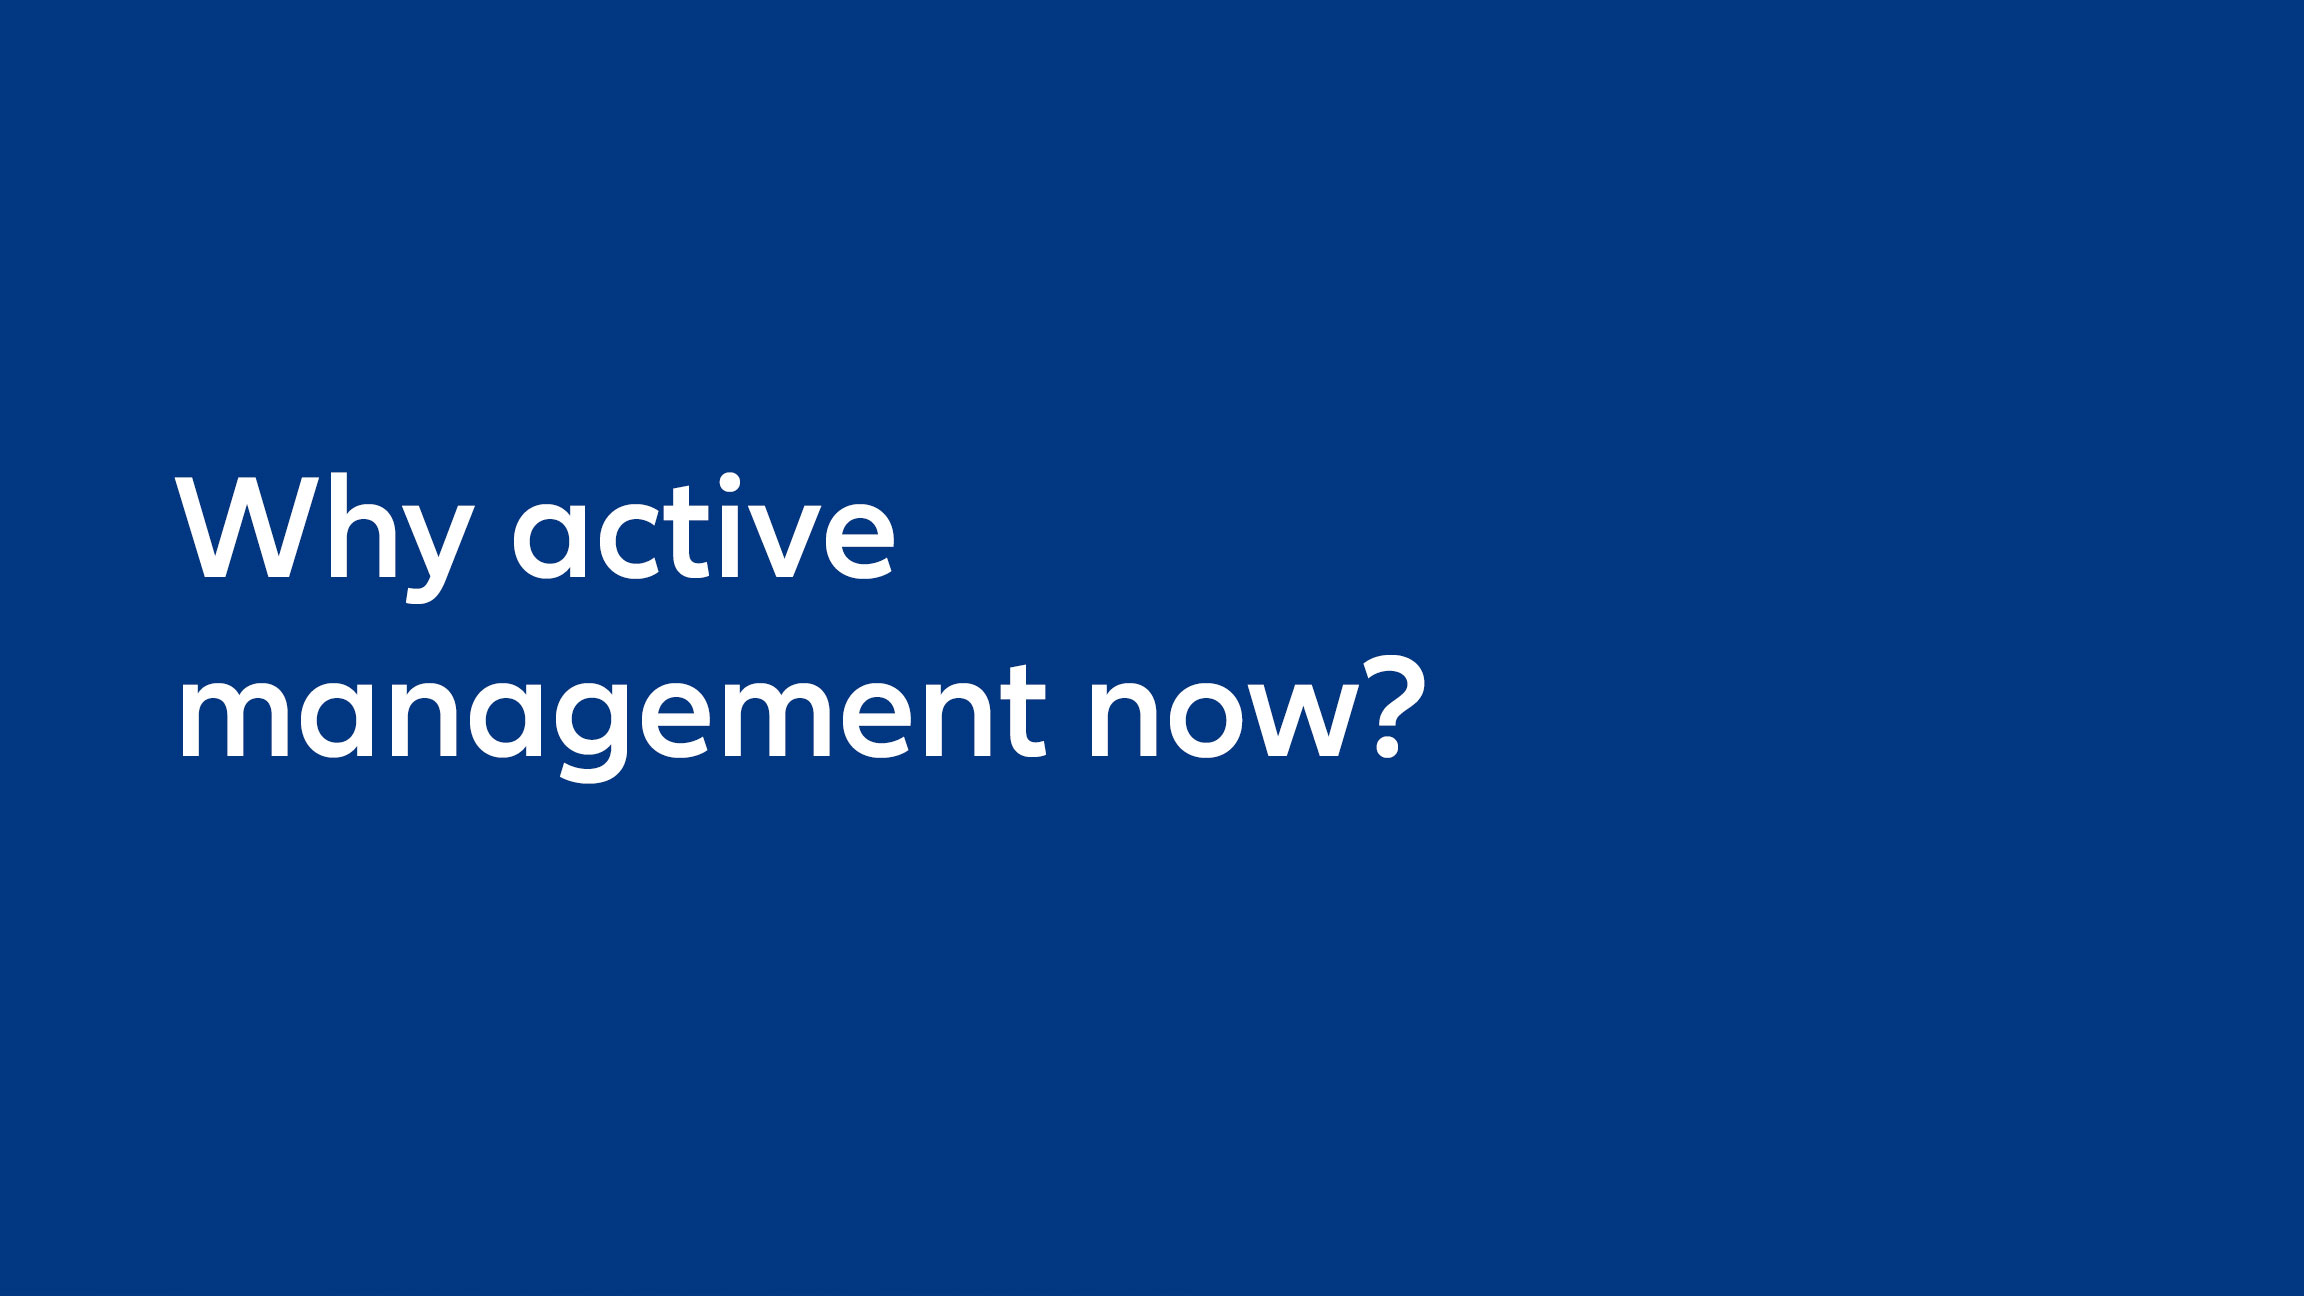 Why active management now?